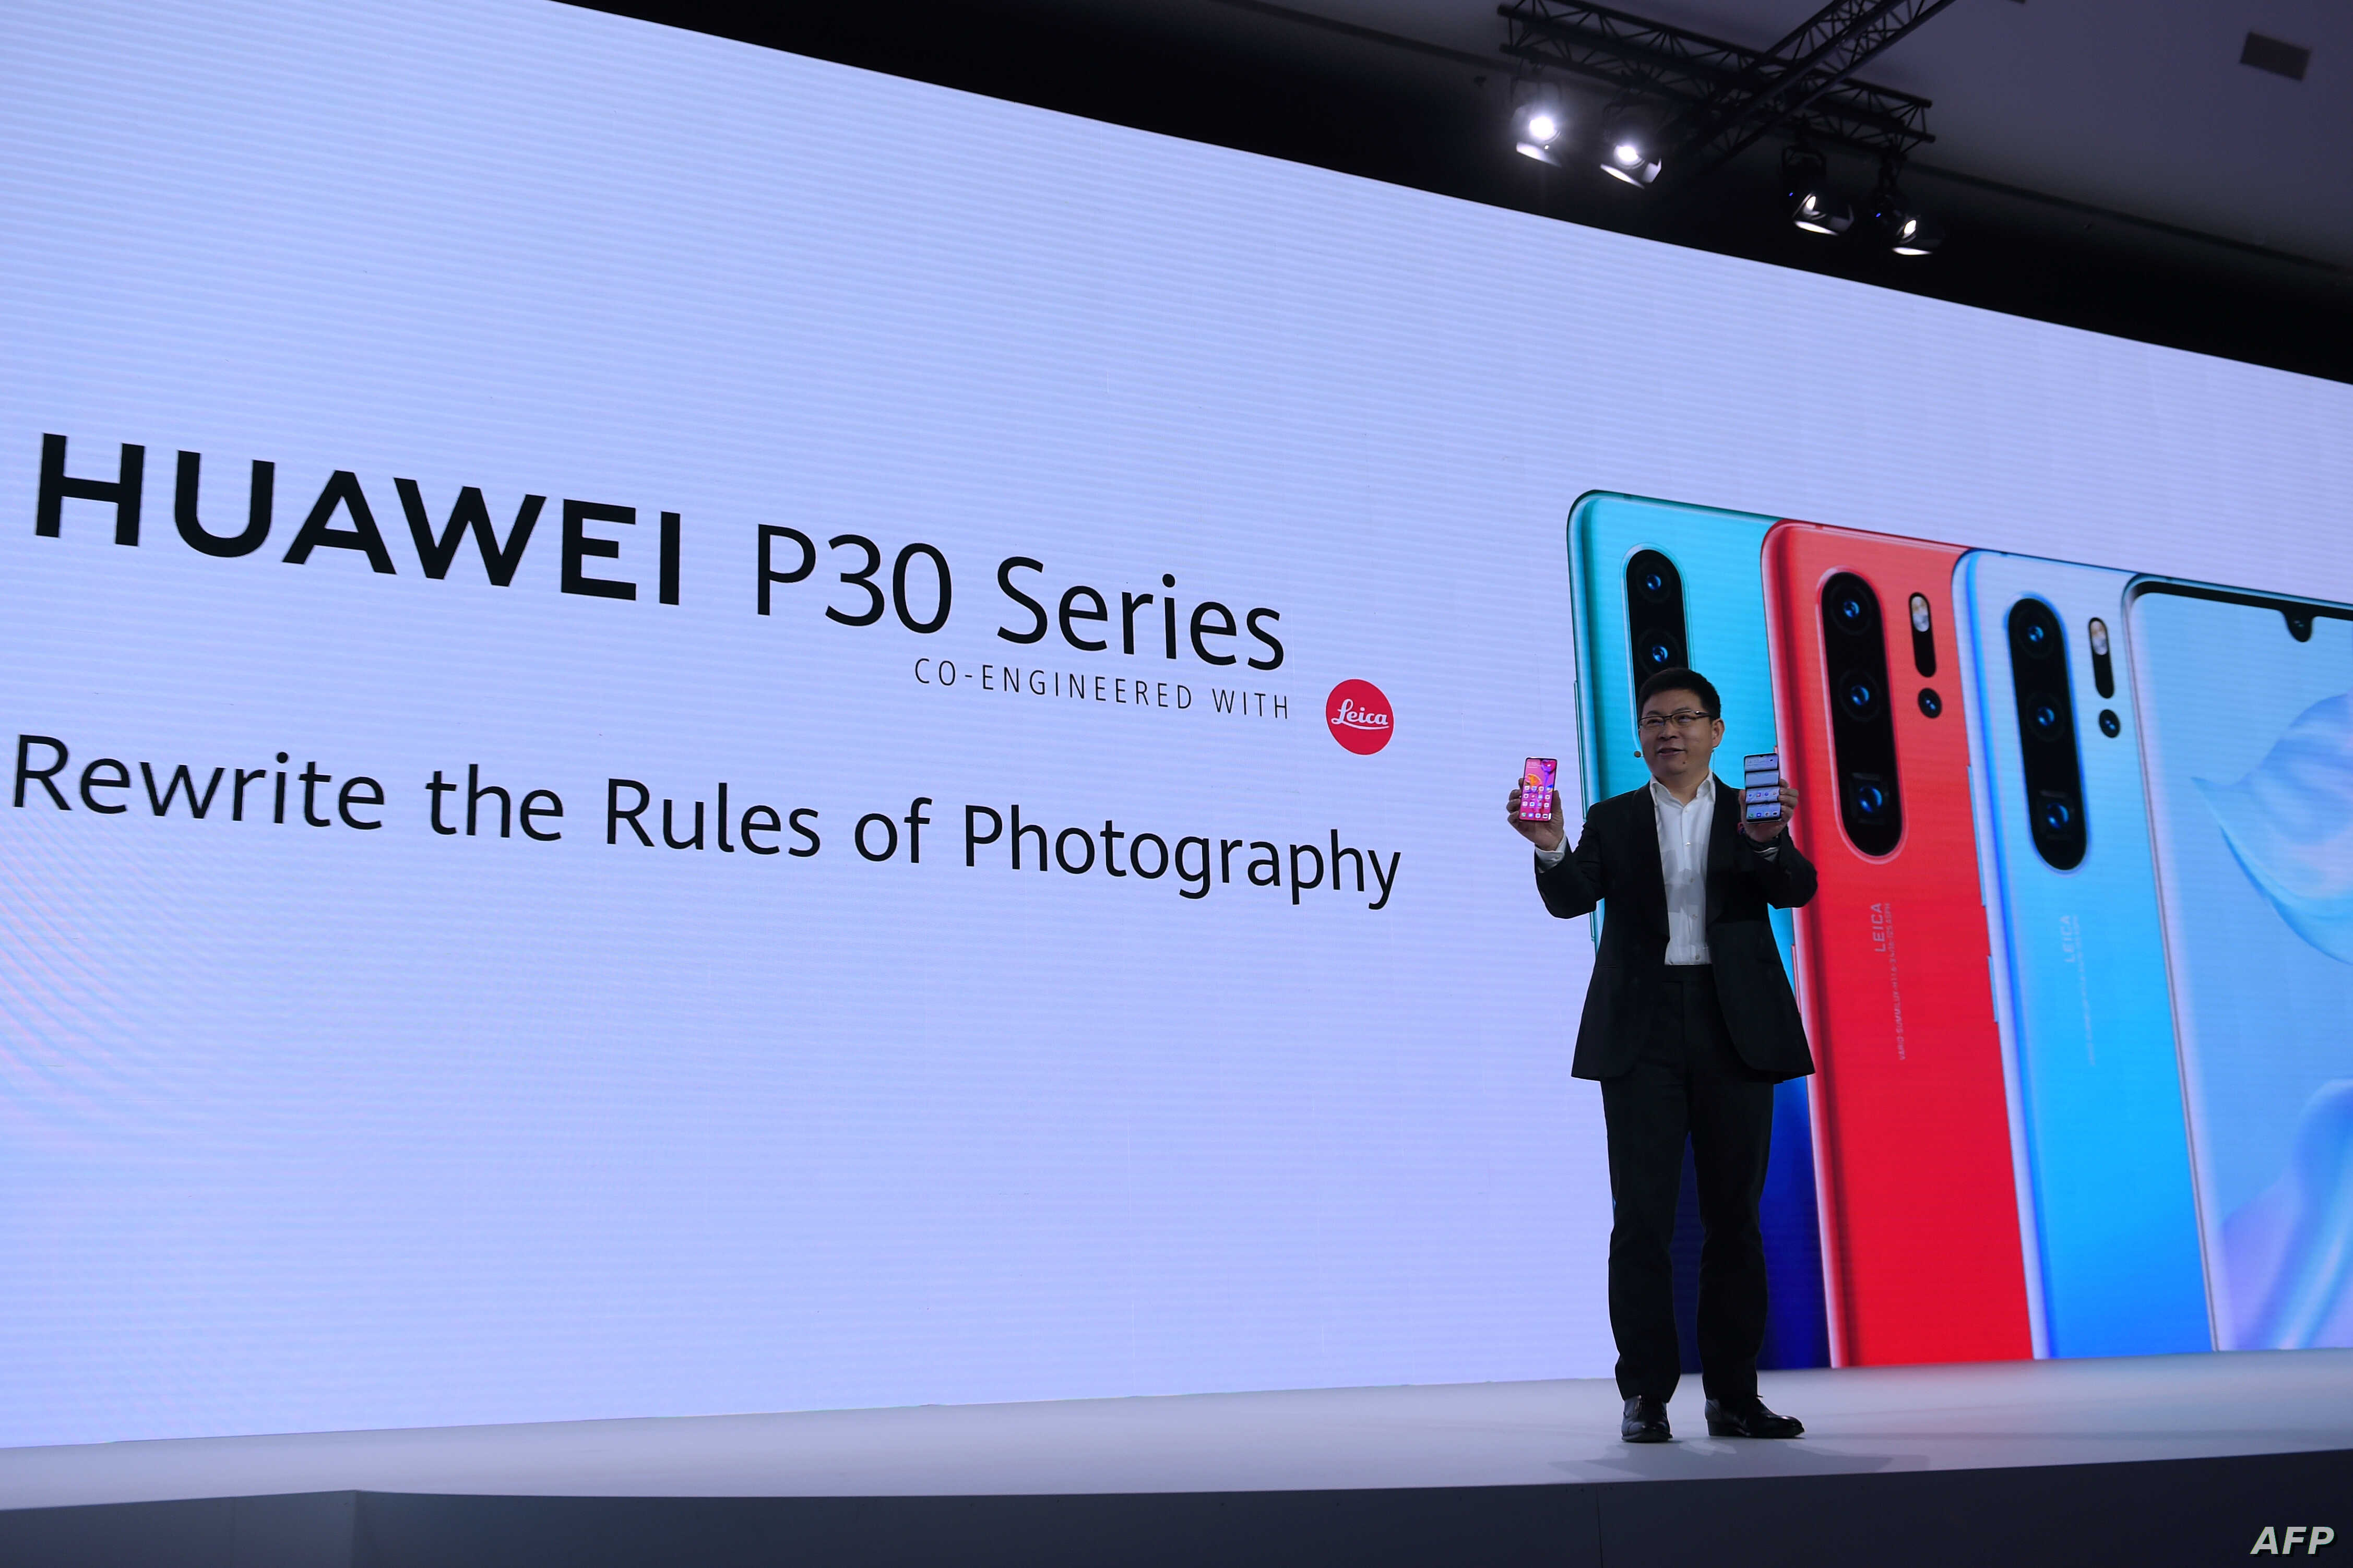 Failed Efforts to Warn Allies Away from Huawei 5G Technology